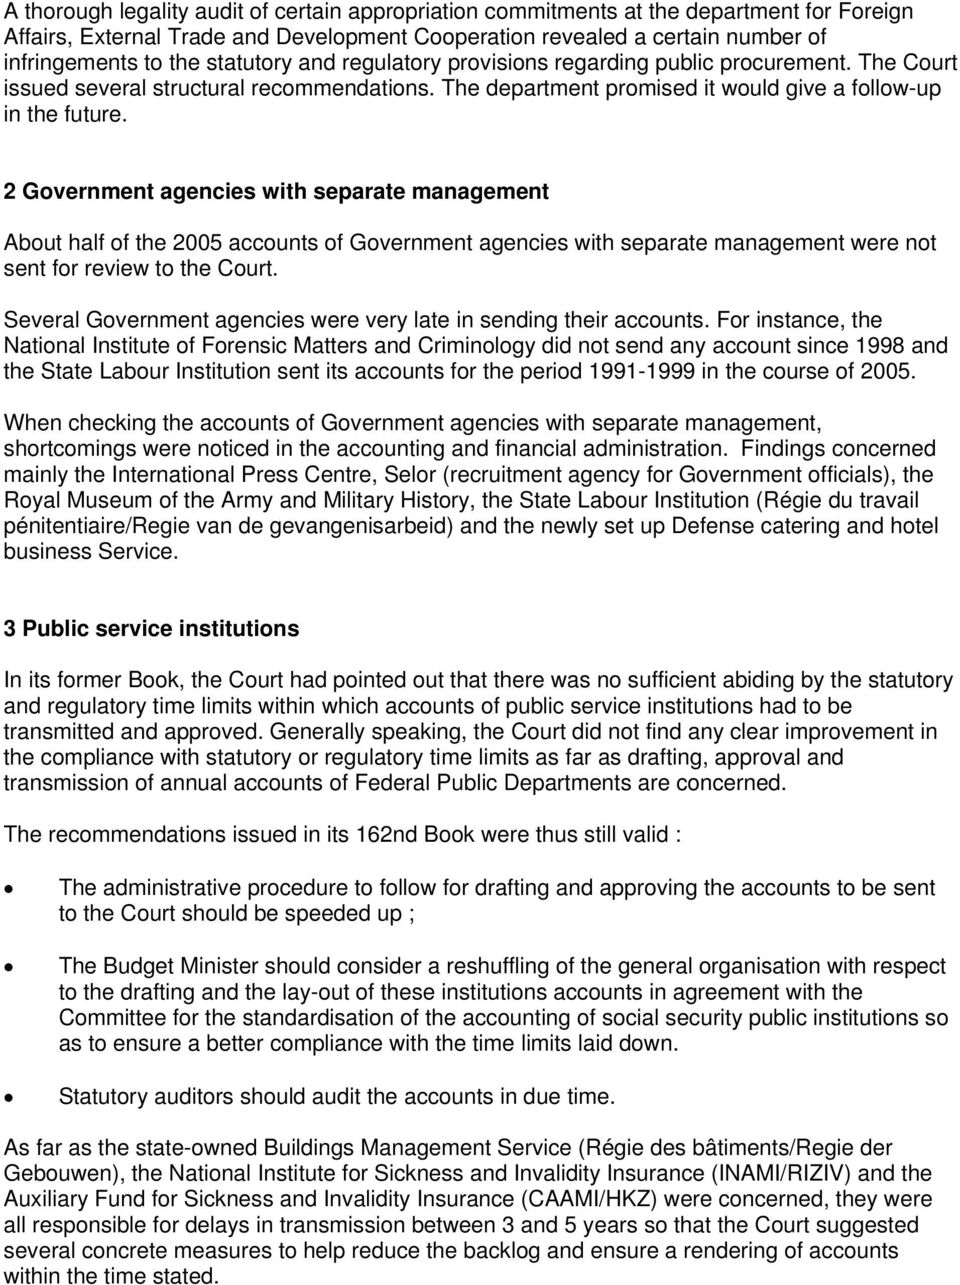 2 Government agencies with separate management About half of the 2005 accounts of Government agencies with separate management were not sent for review to the Court.